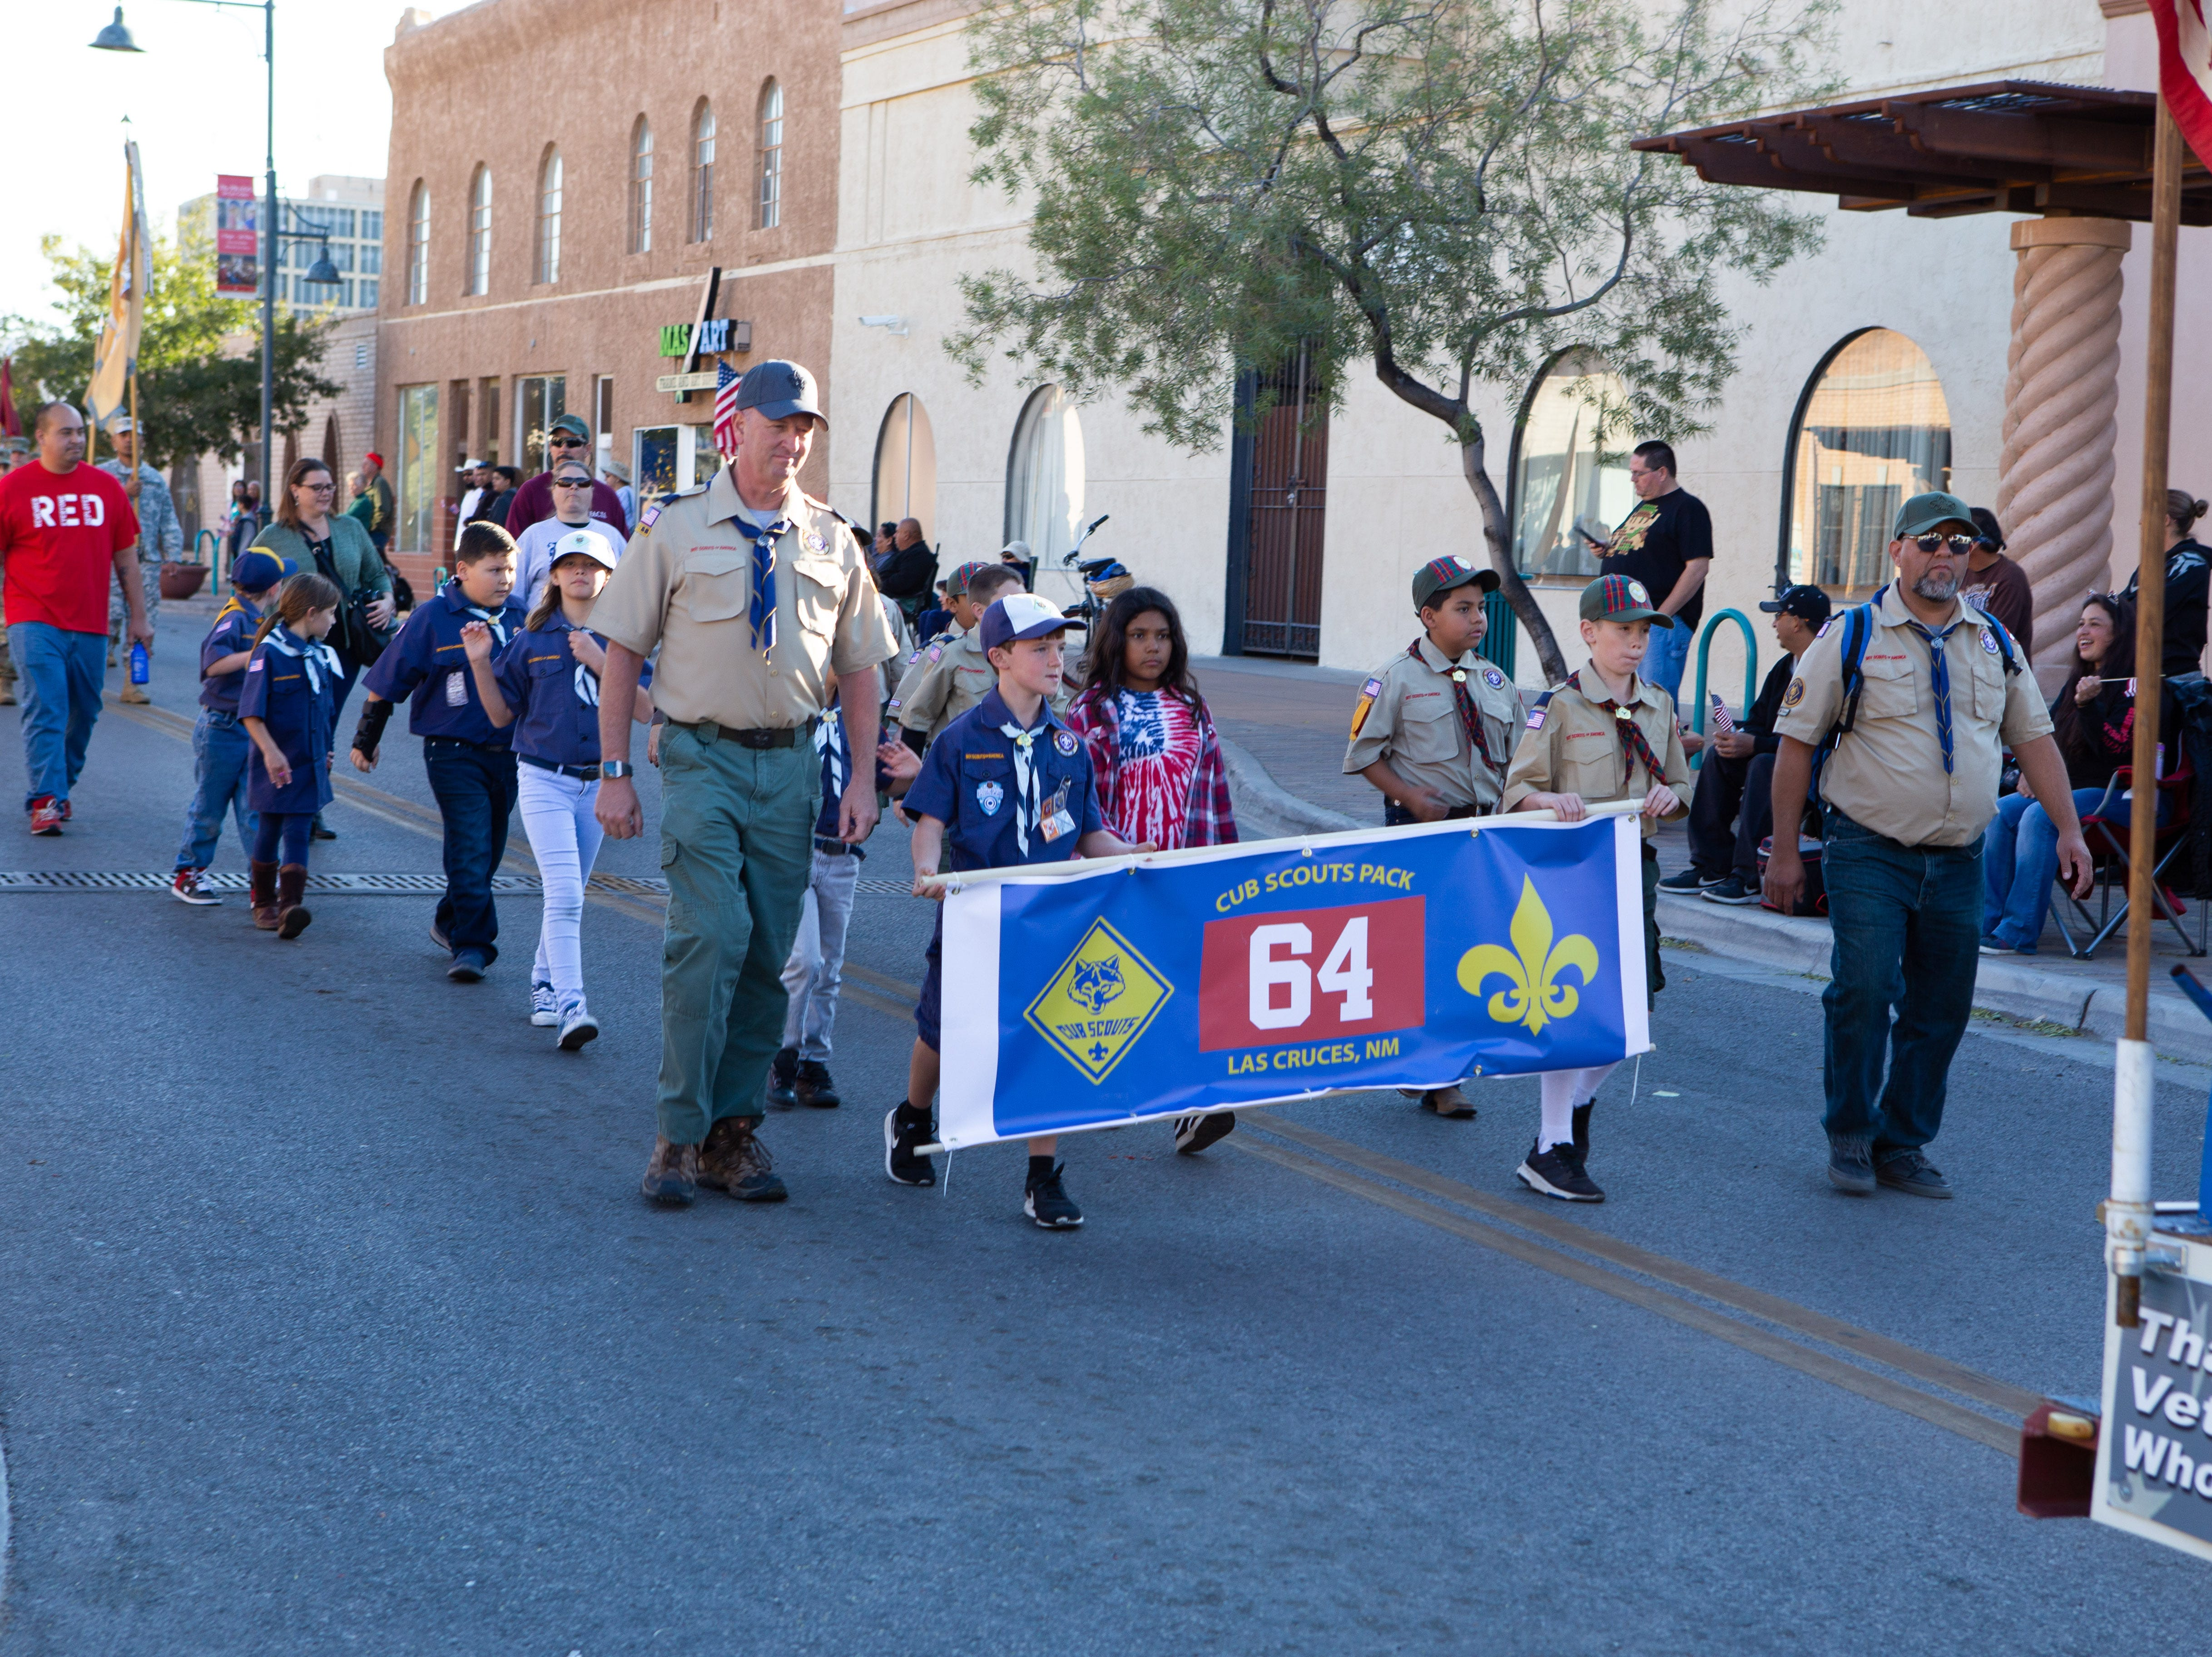 Cub Scout Pack 64 participated in the Veterans Day Parade held on November 10, 2018.